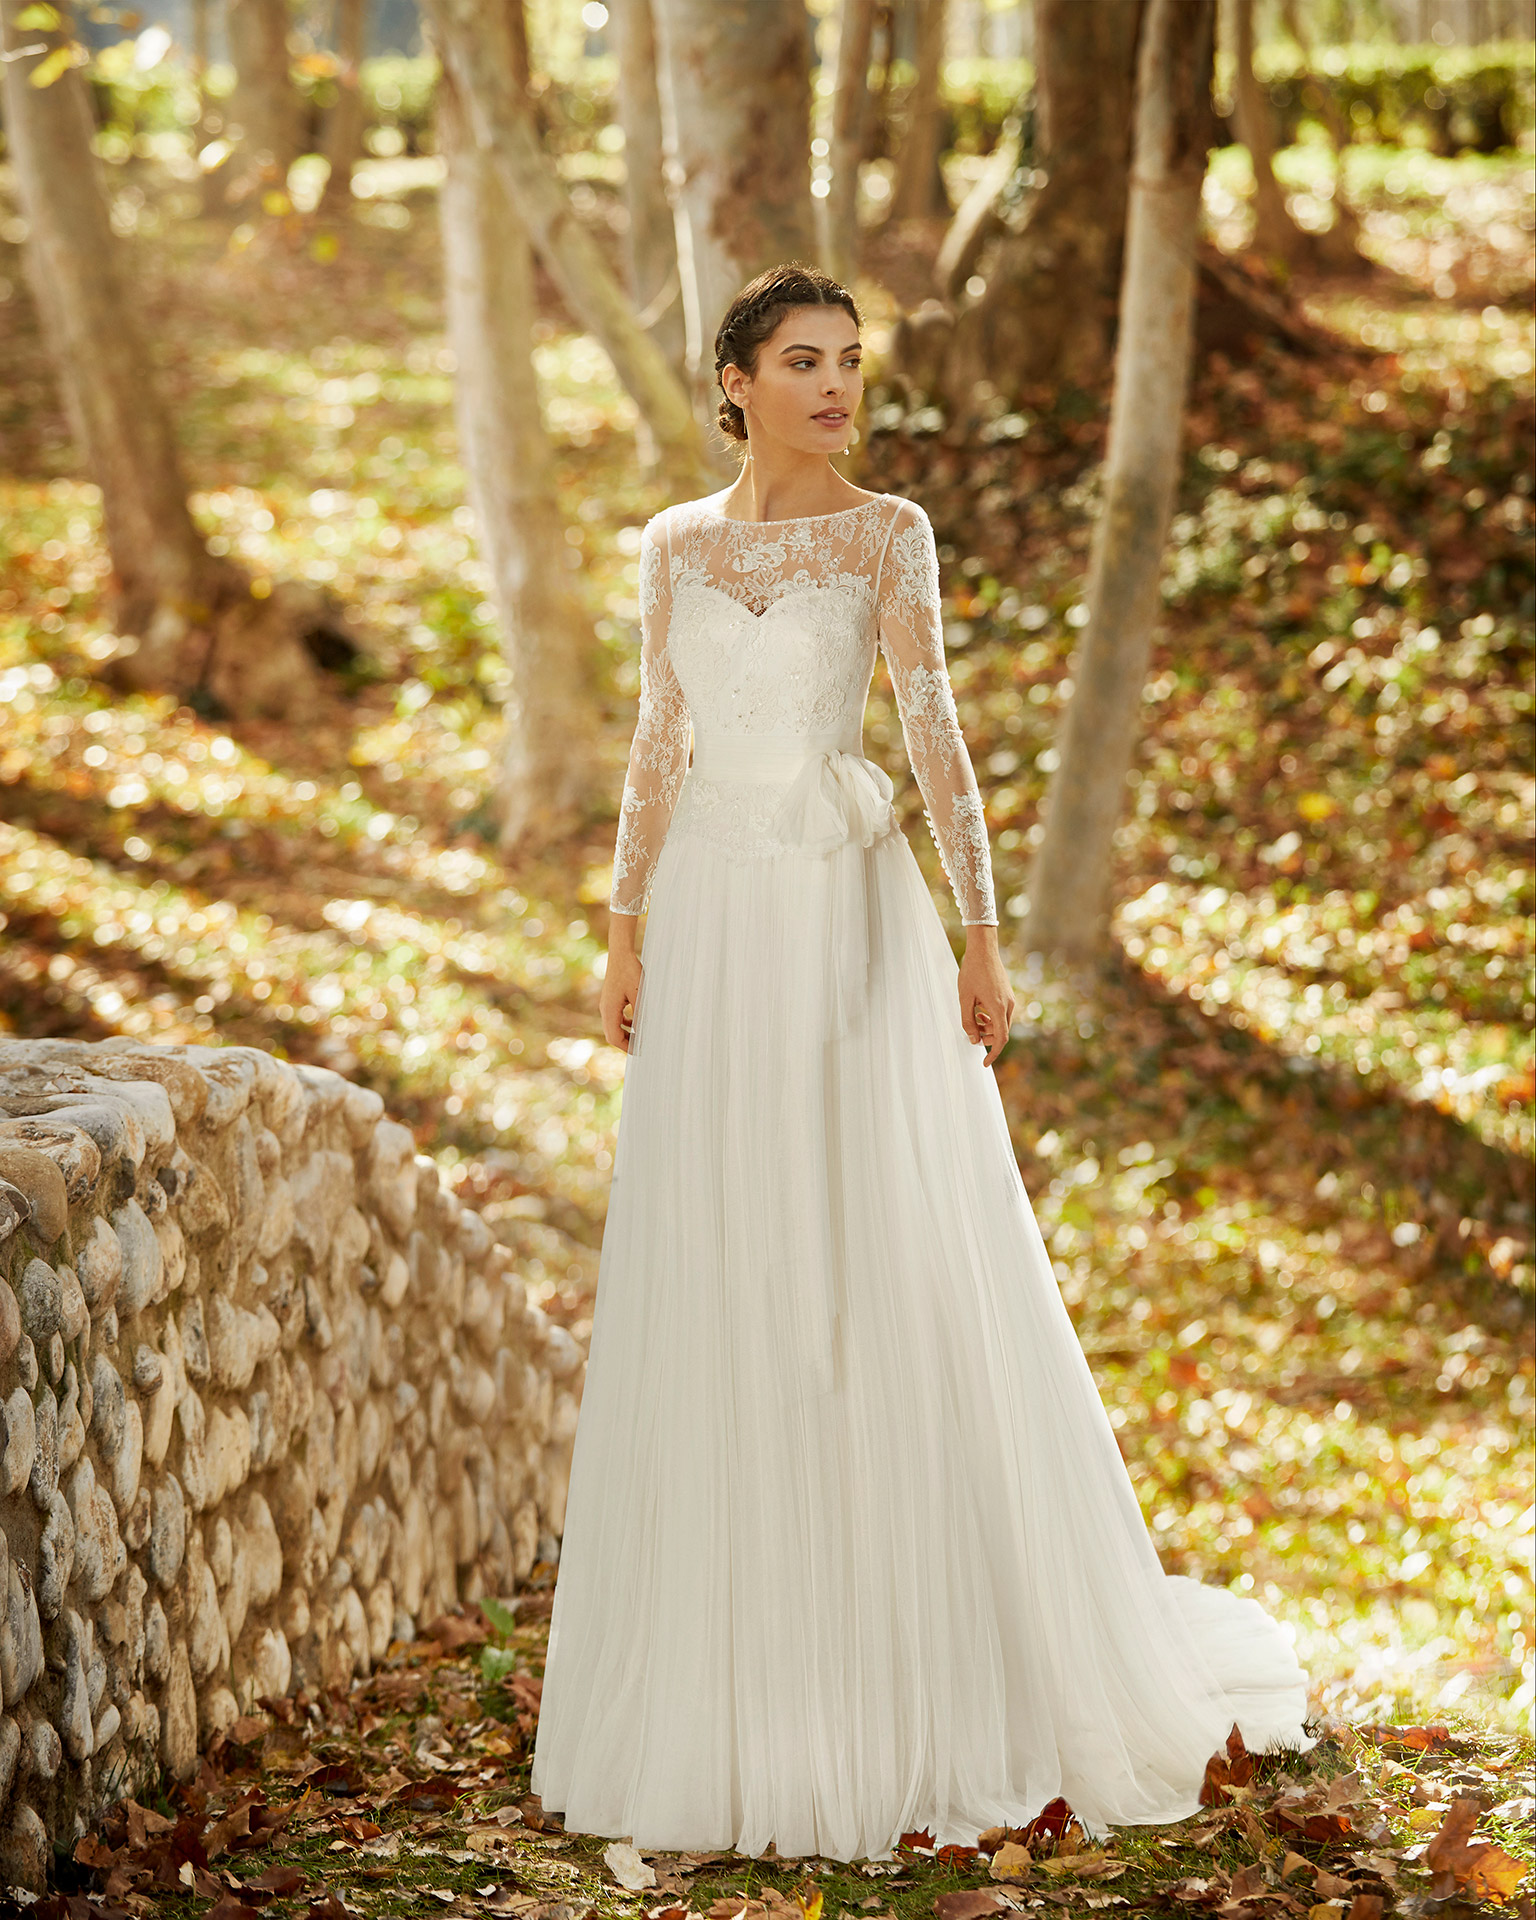 Romantic soft tulle and lace wedding dress with beading and neckline and back with sheer inserts. 2020 ALMANOVIA Collection.